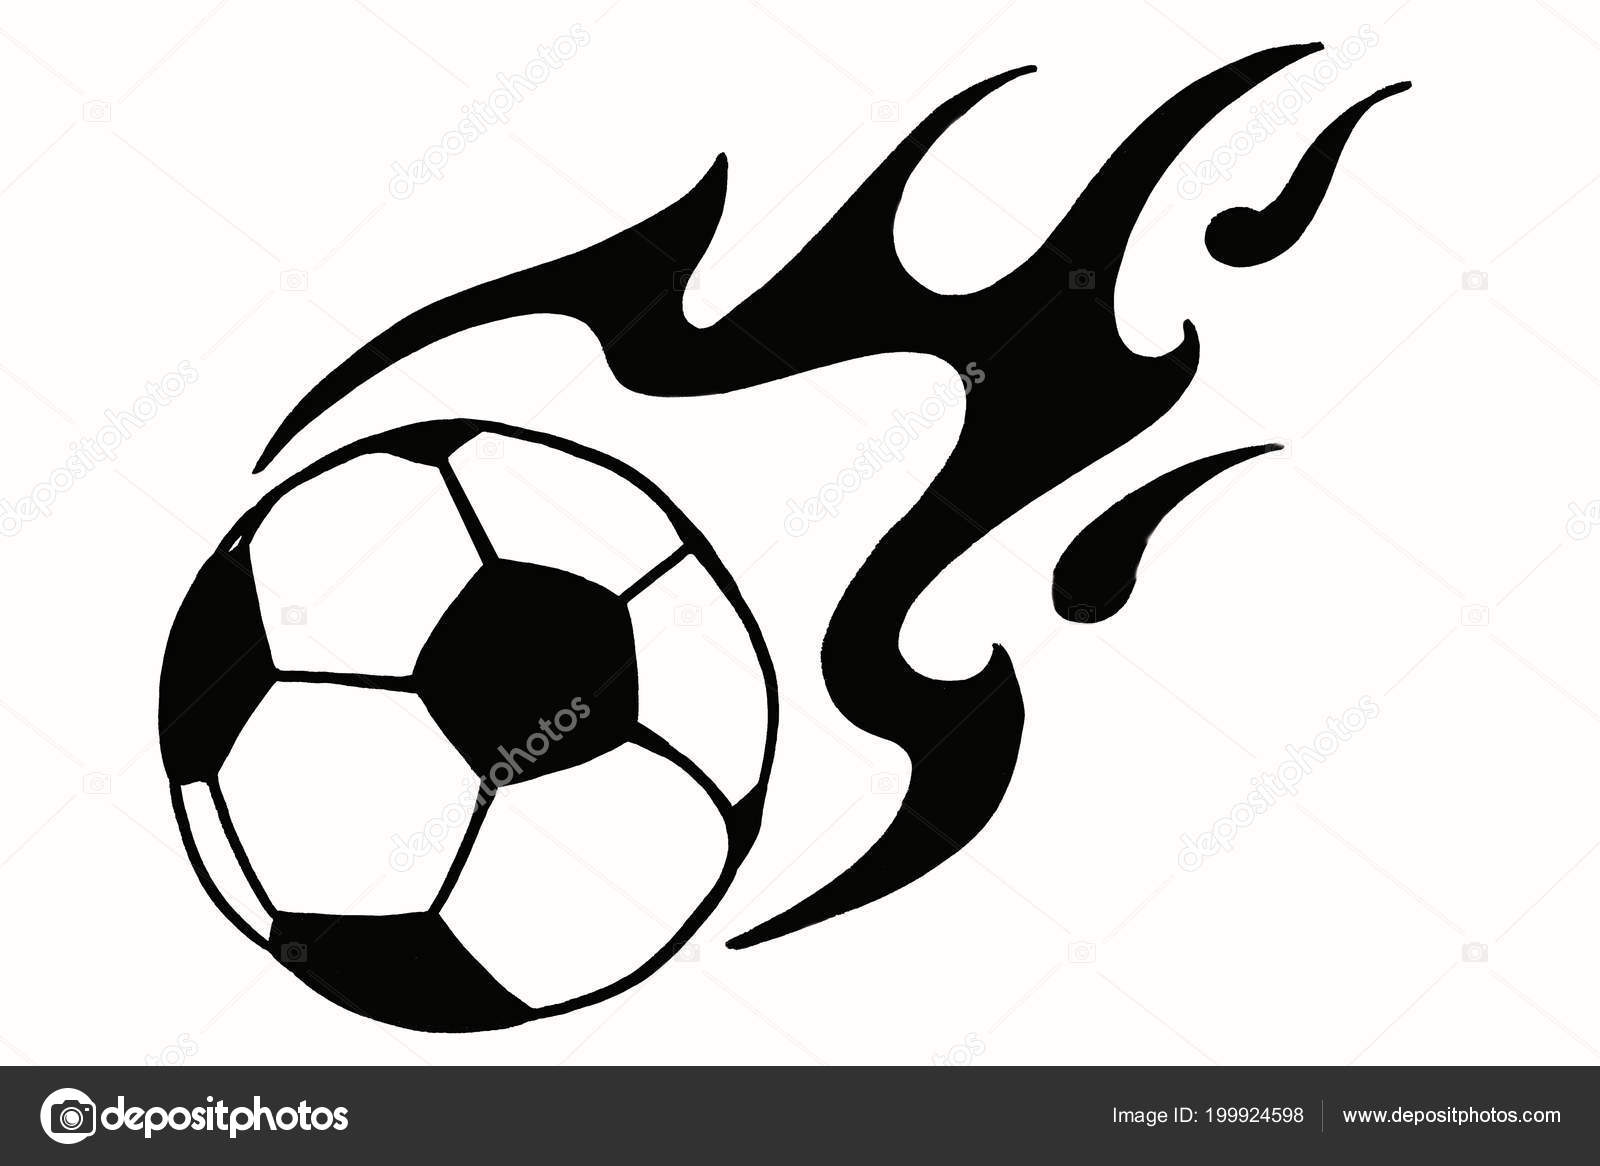 Soccer Ball Fire Hand Drawn Simple Illustration Black Ball